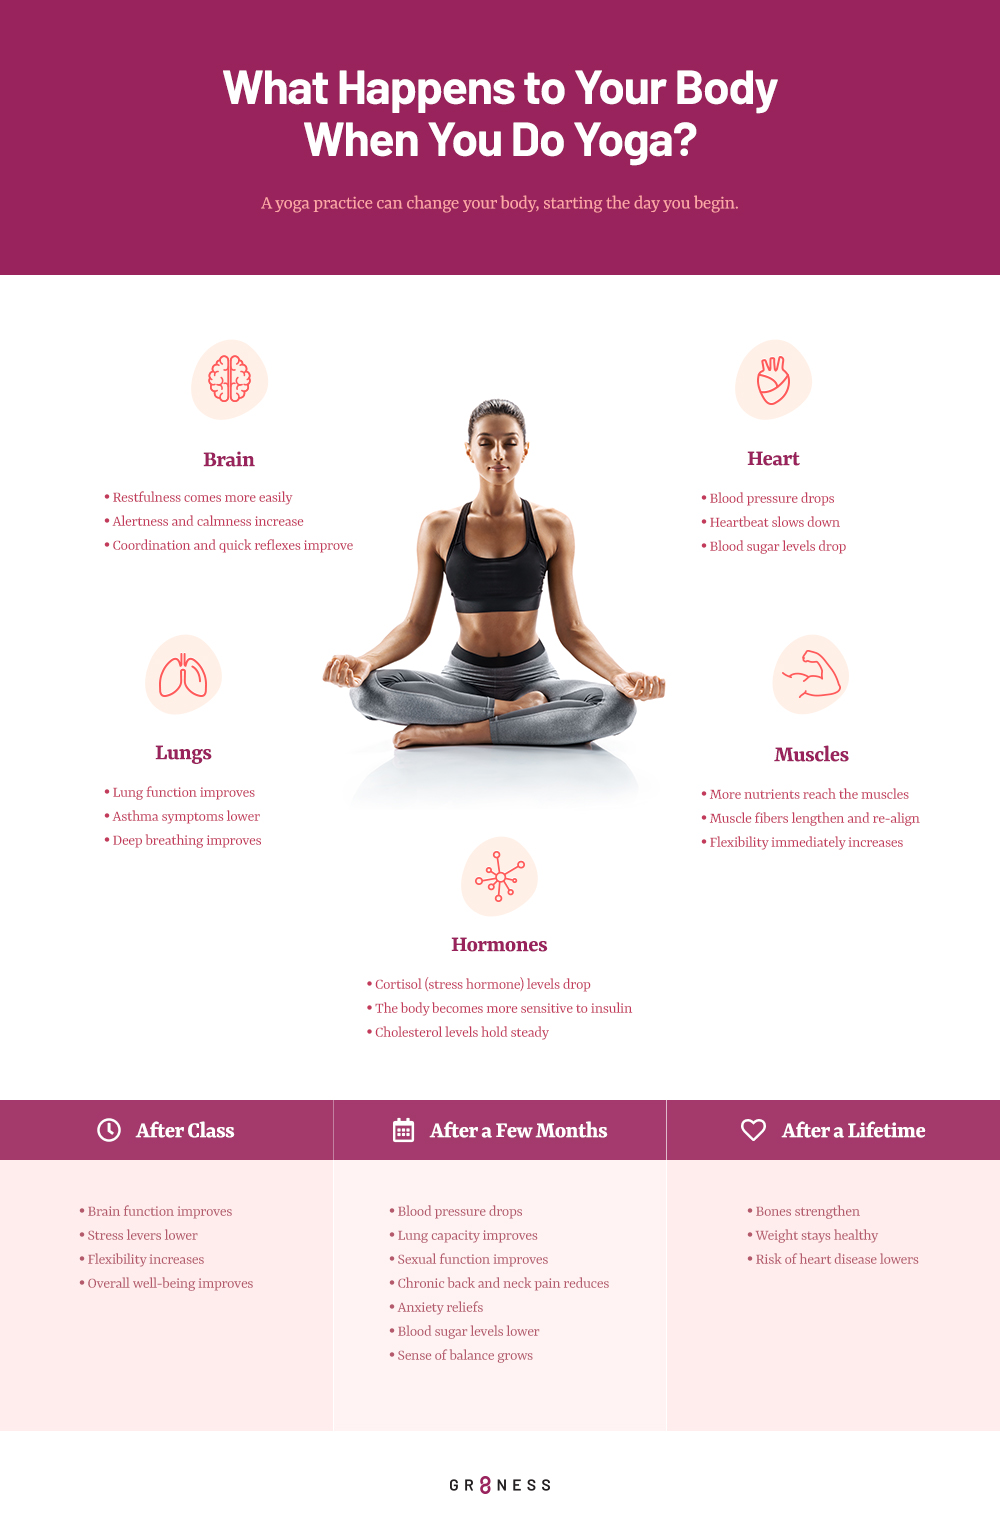 A step by step guide detailing what happens to your body when doing yoga